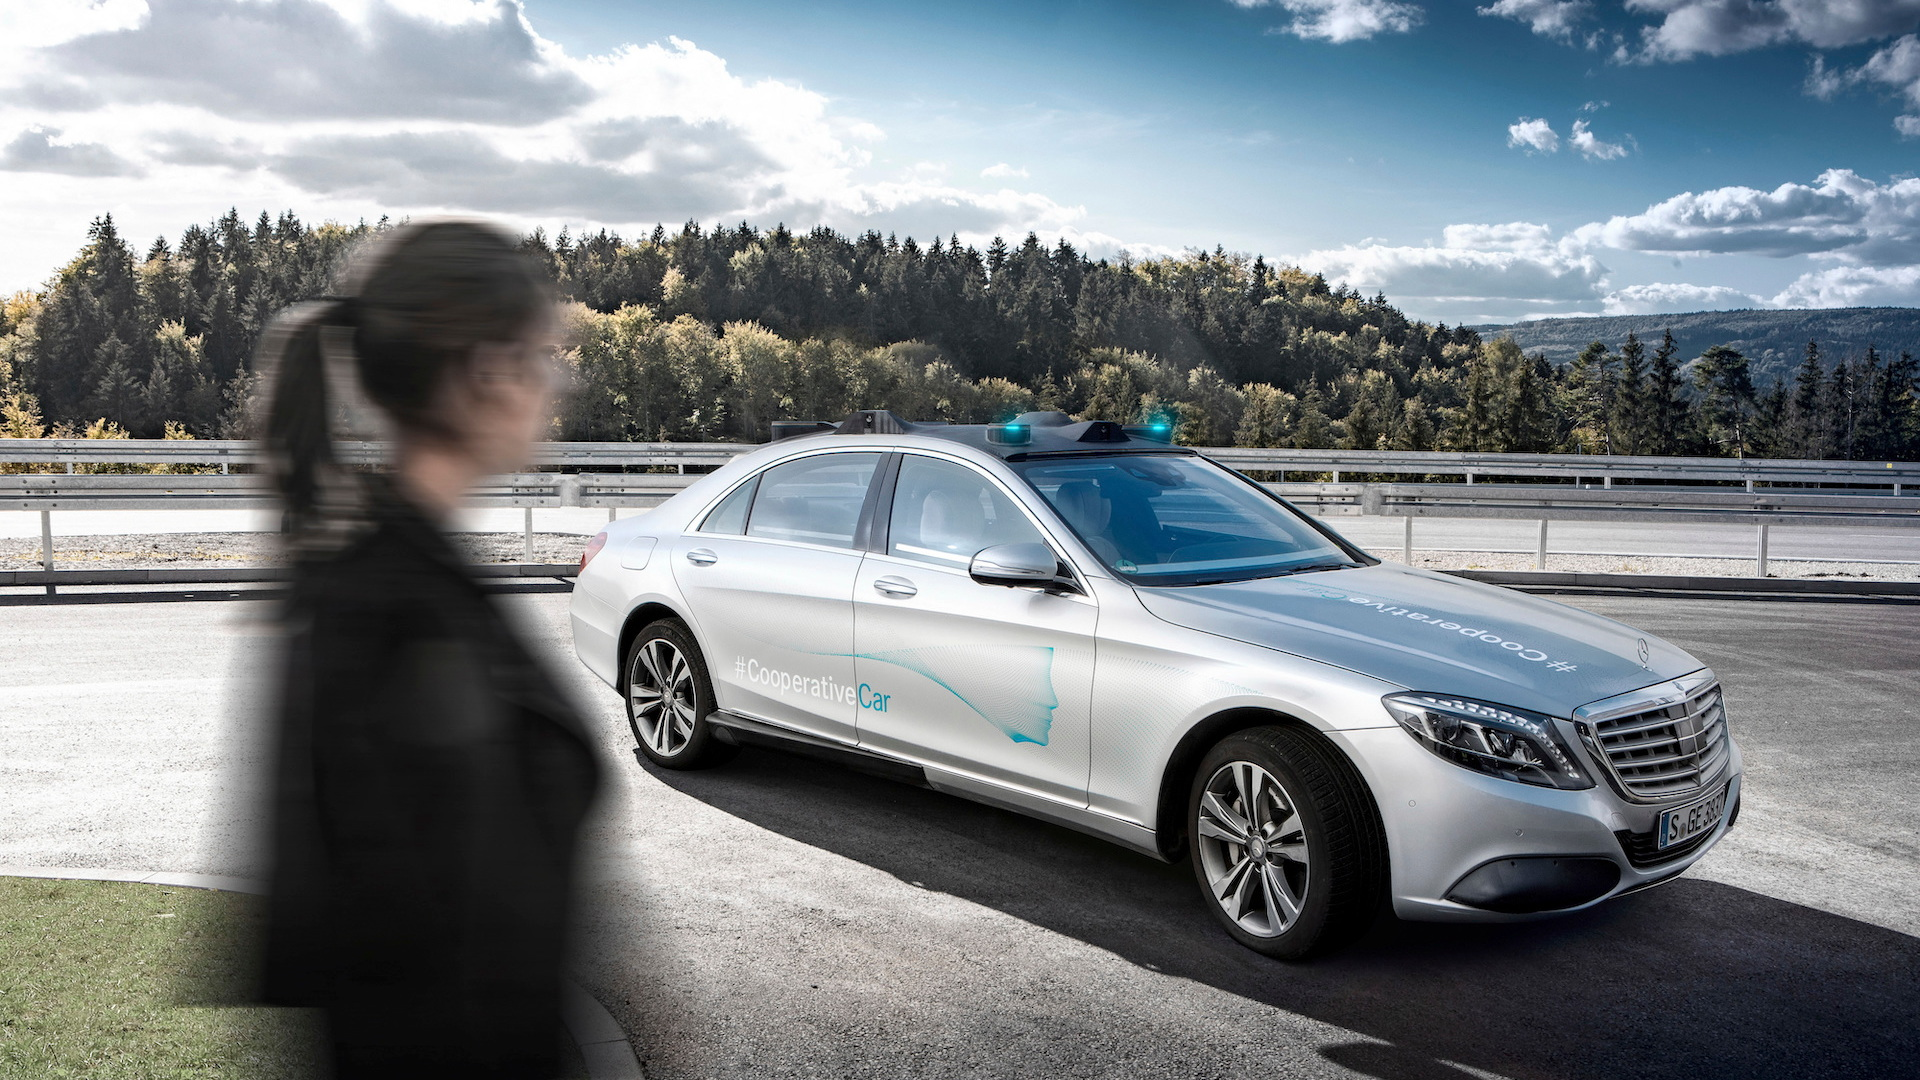 Mercedes-Benz self-driving Cooperation Car